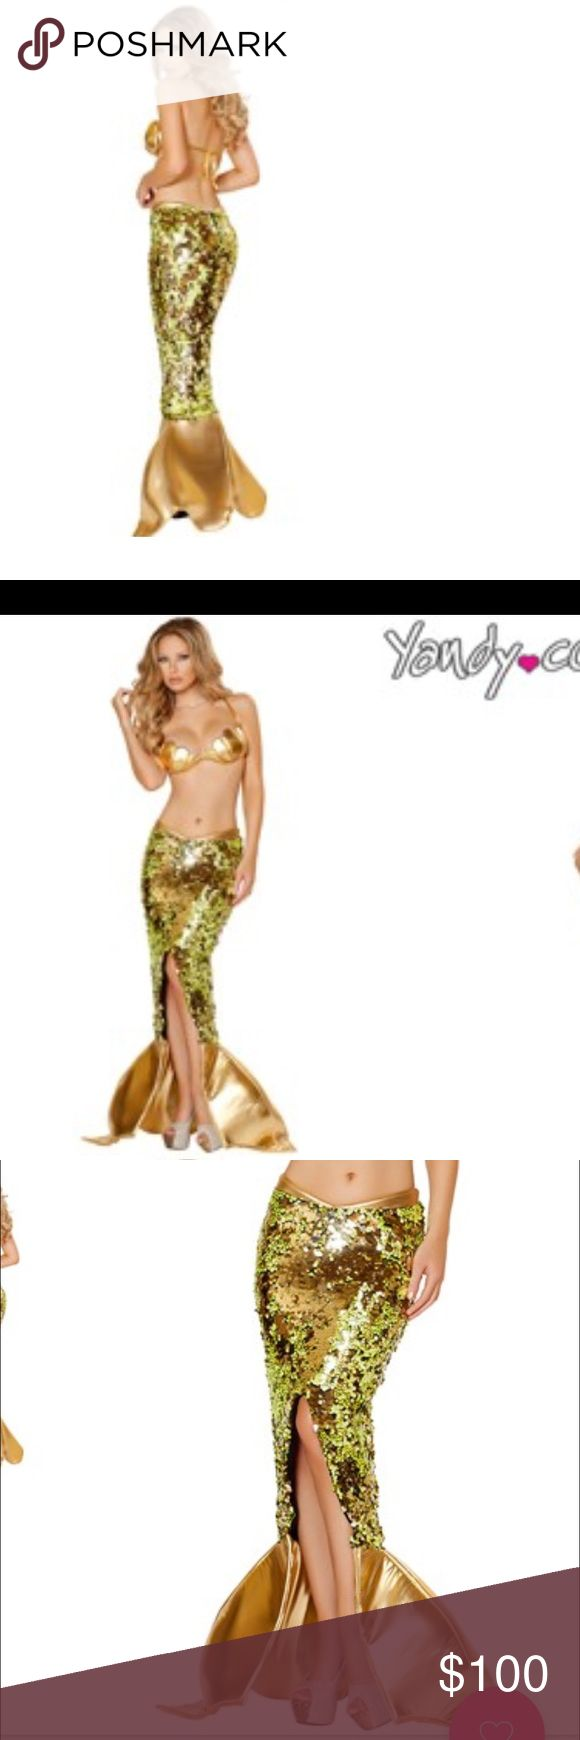 Sexy Sea Siren GOLD sequin mermaid 2 Pc costume Sexy Sea Siren GOLD sequin mermaid Halloween costume. Size Medium. Never worn. Bought multiple costume for a charity event then ended up making one instead. (Plus top is too small for me) ROMA Other